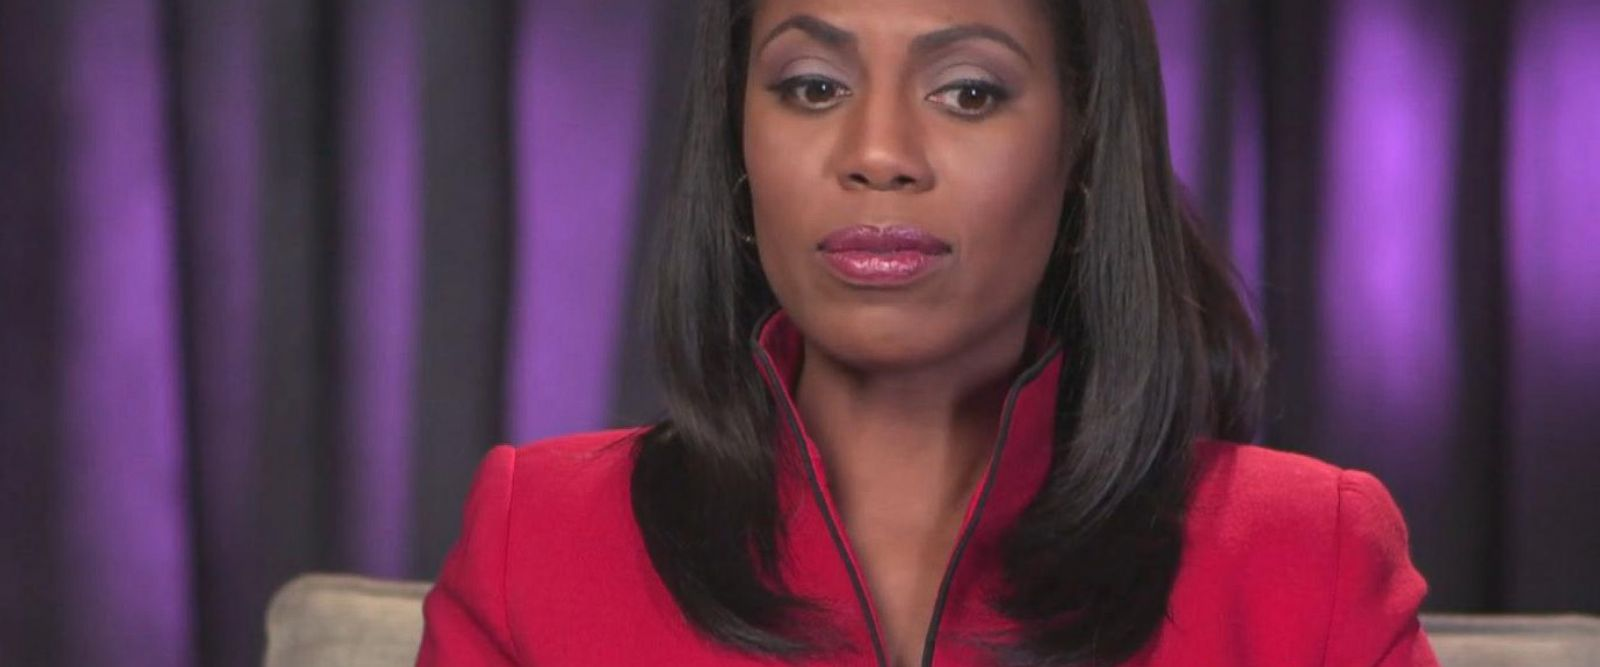 VIDEO: Omarosa Manigault: Donald Trump 'is not a racist'